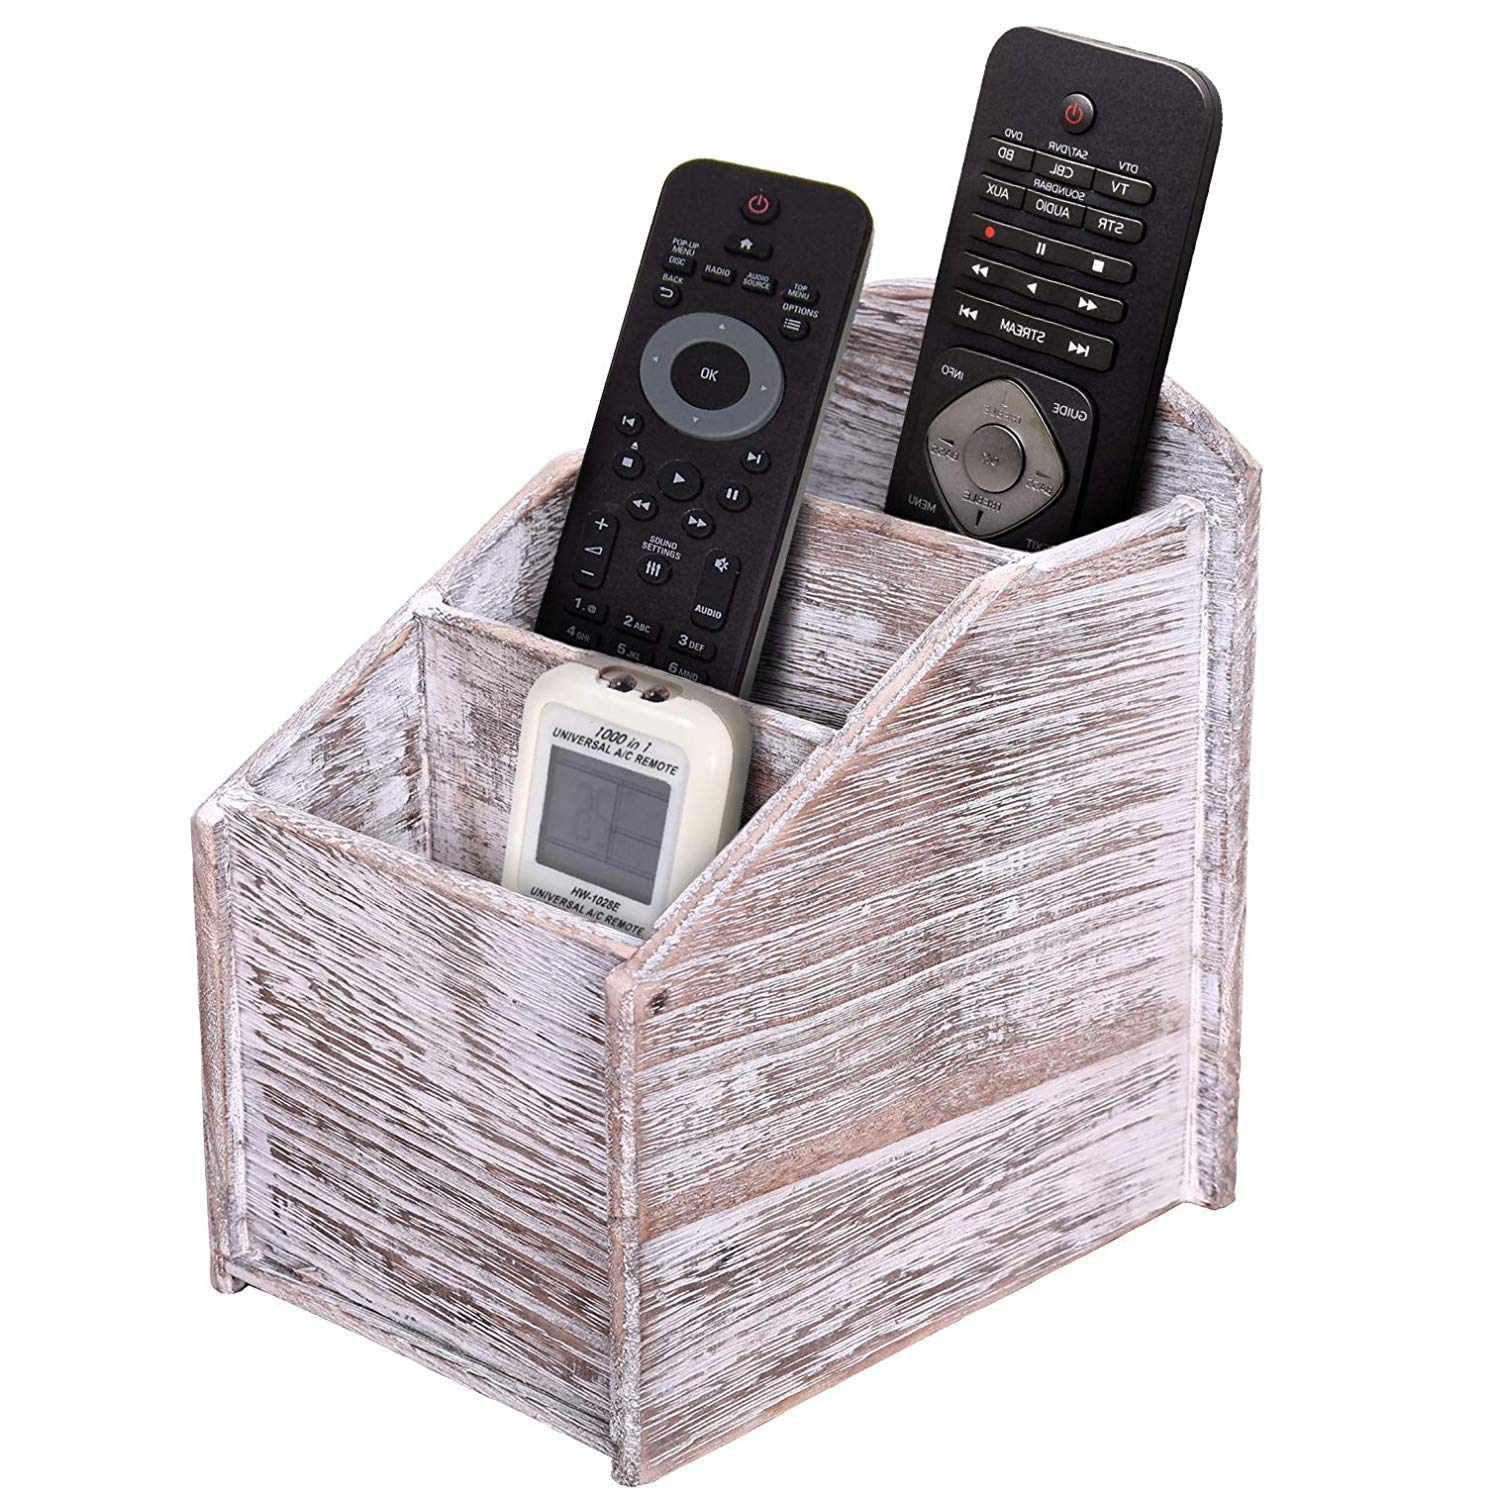 Rustic 3 Slot Wooden Remote Control Holder Caddy Holder For Multimedia Office Or Desk Supplies Modern Farmhouse Decor For Living Room Distressed Vintage Whitecolor Buy Online In Belize At Desertcart